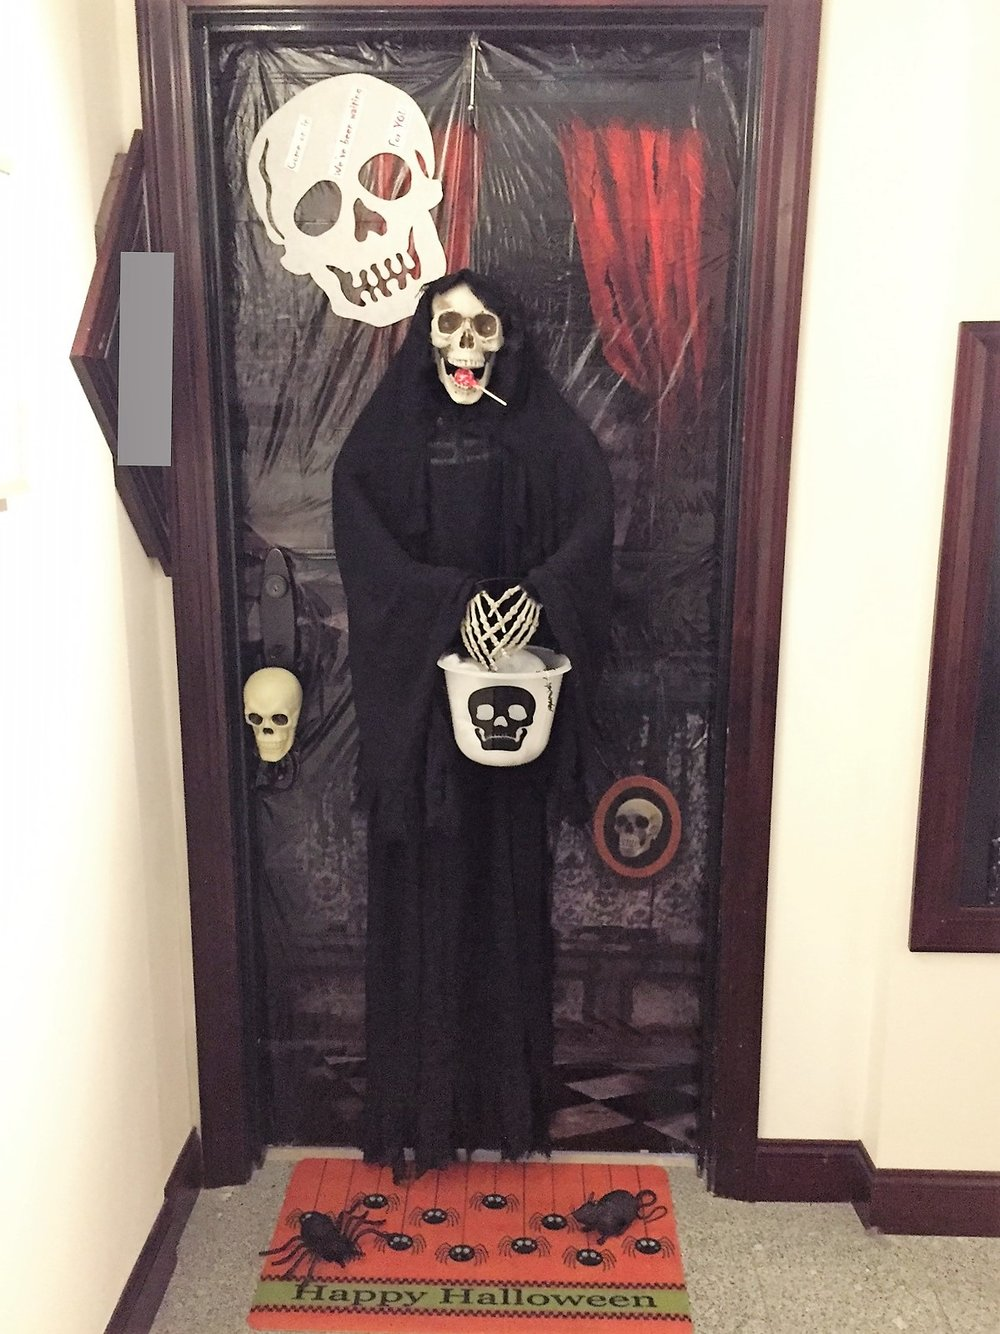 "Entry 1 - Maurice and Tracey - Trick or Treating Skeleton ""Come on in, We've been waiting for you"""